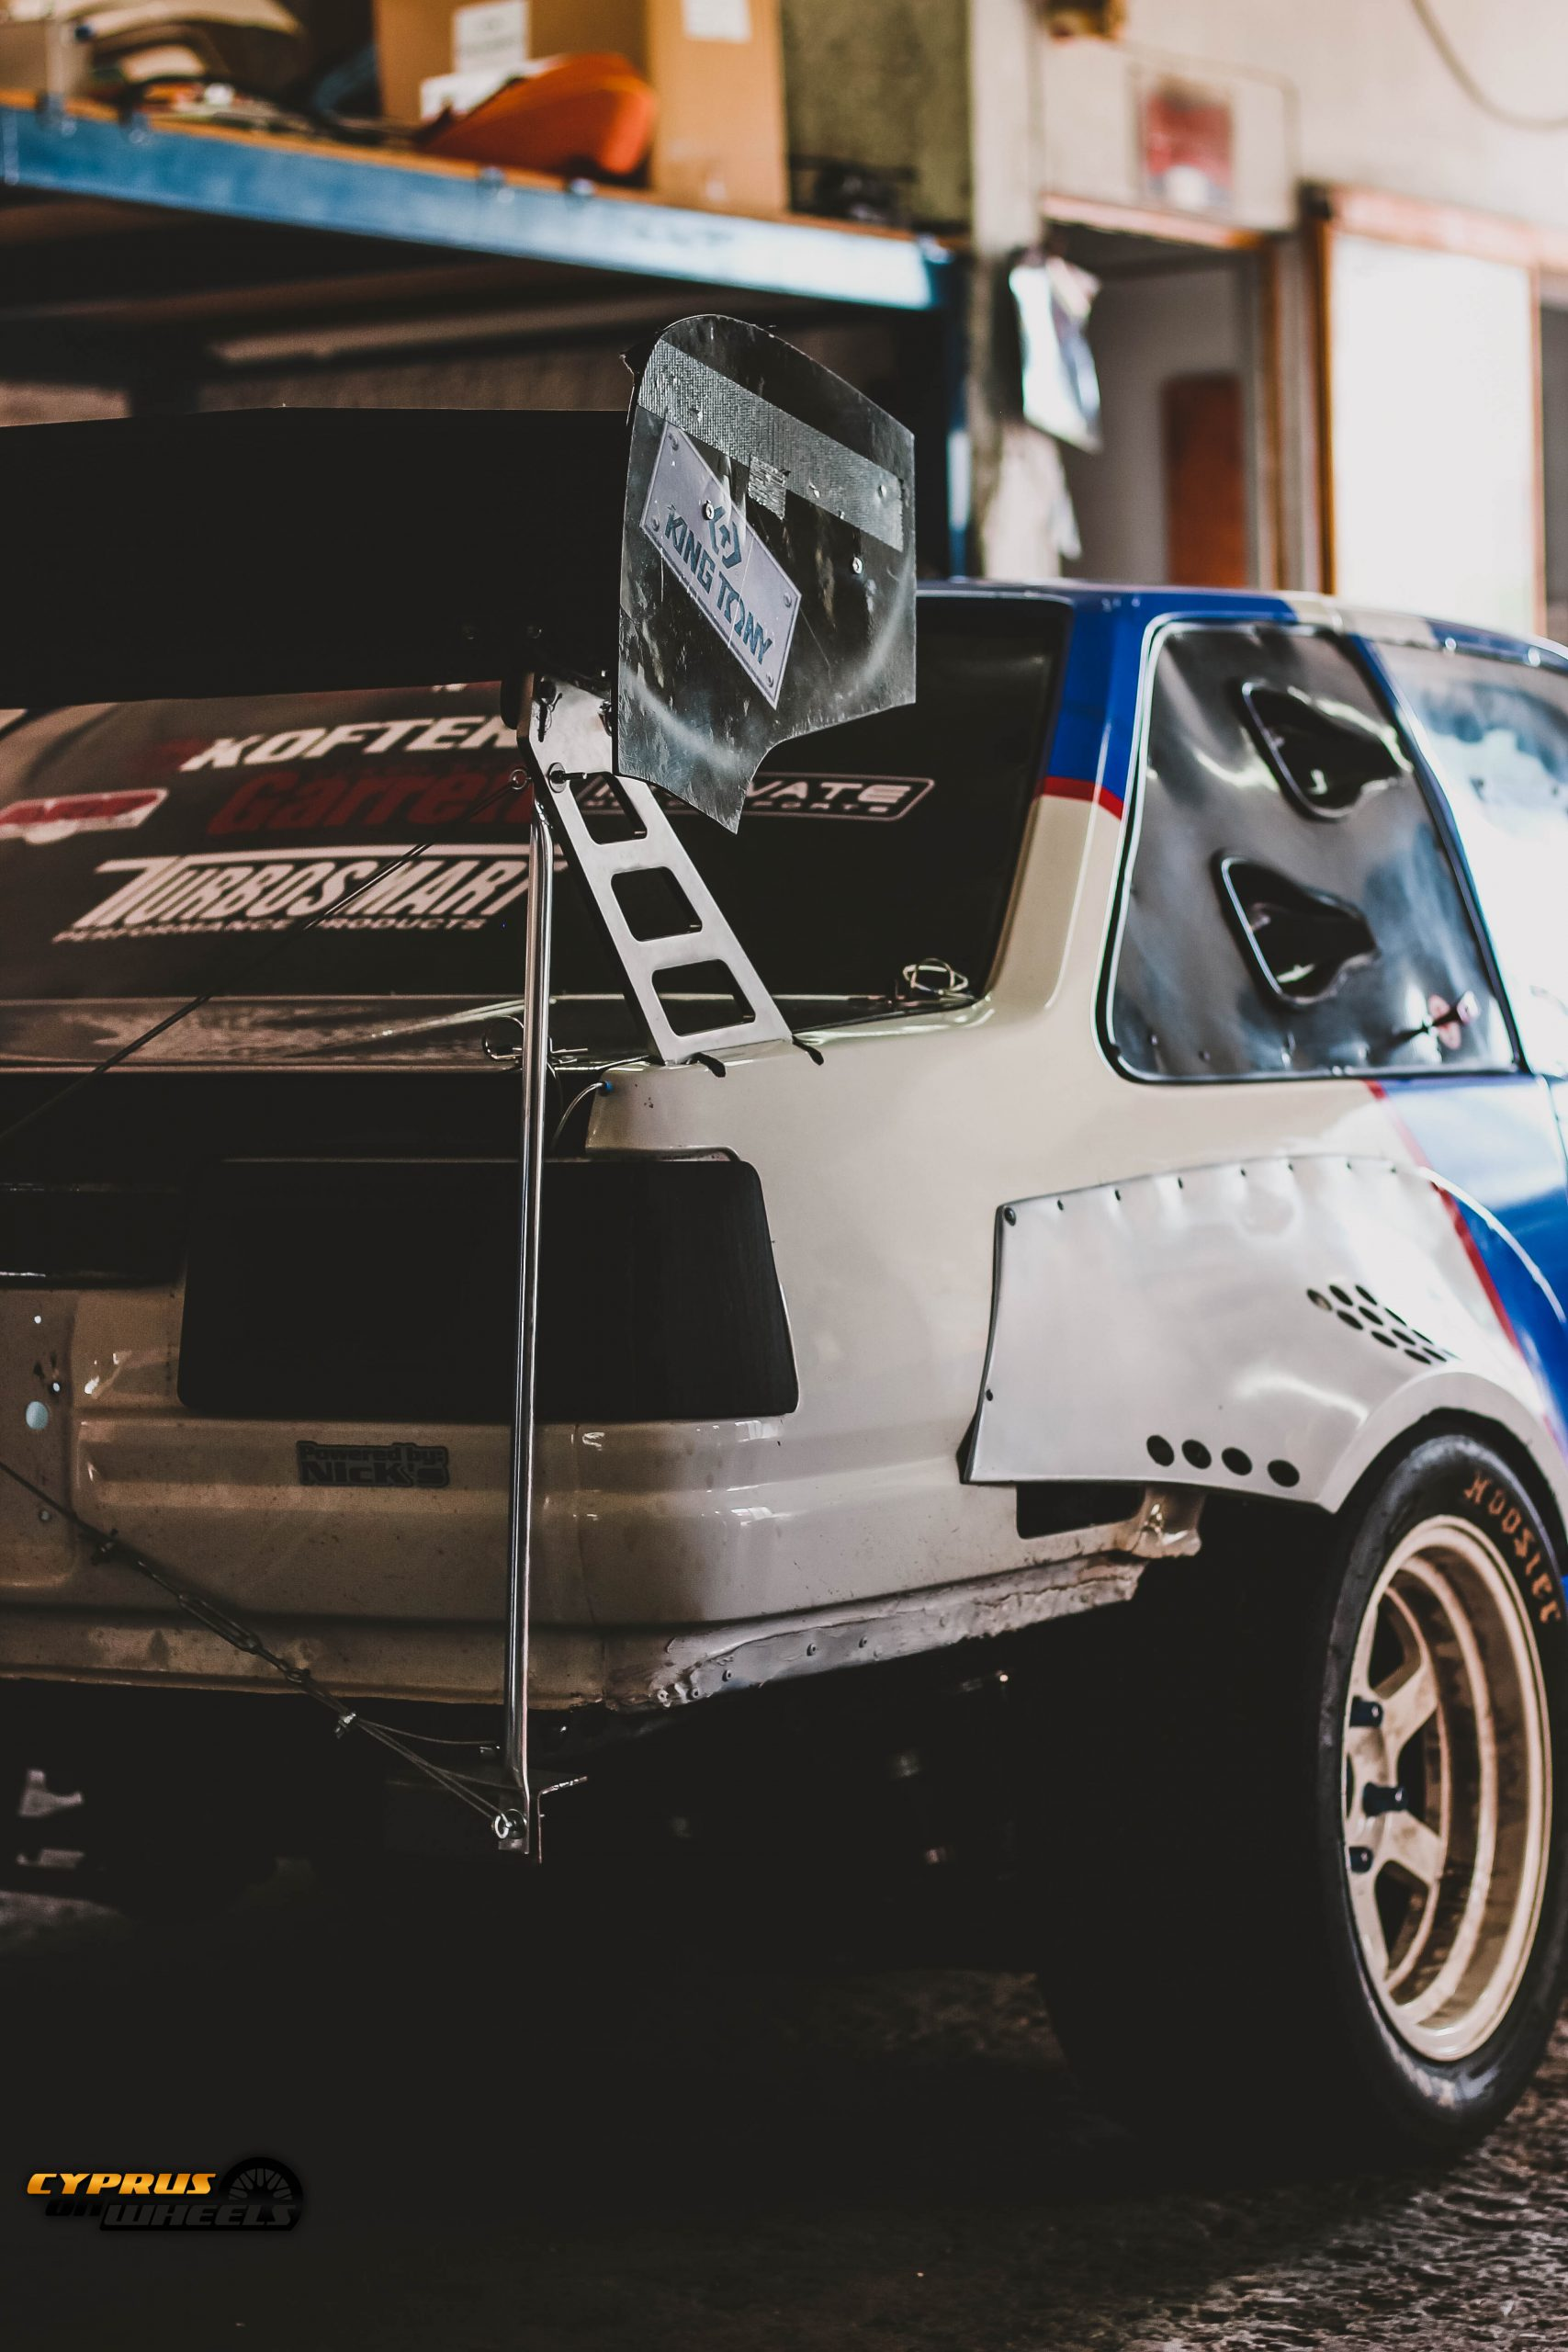 ae86 chassis mounted wing